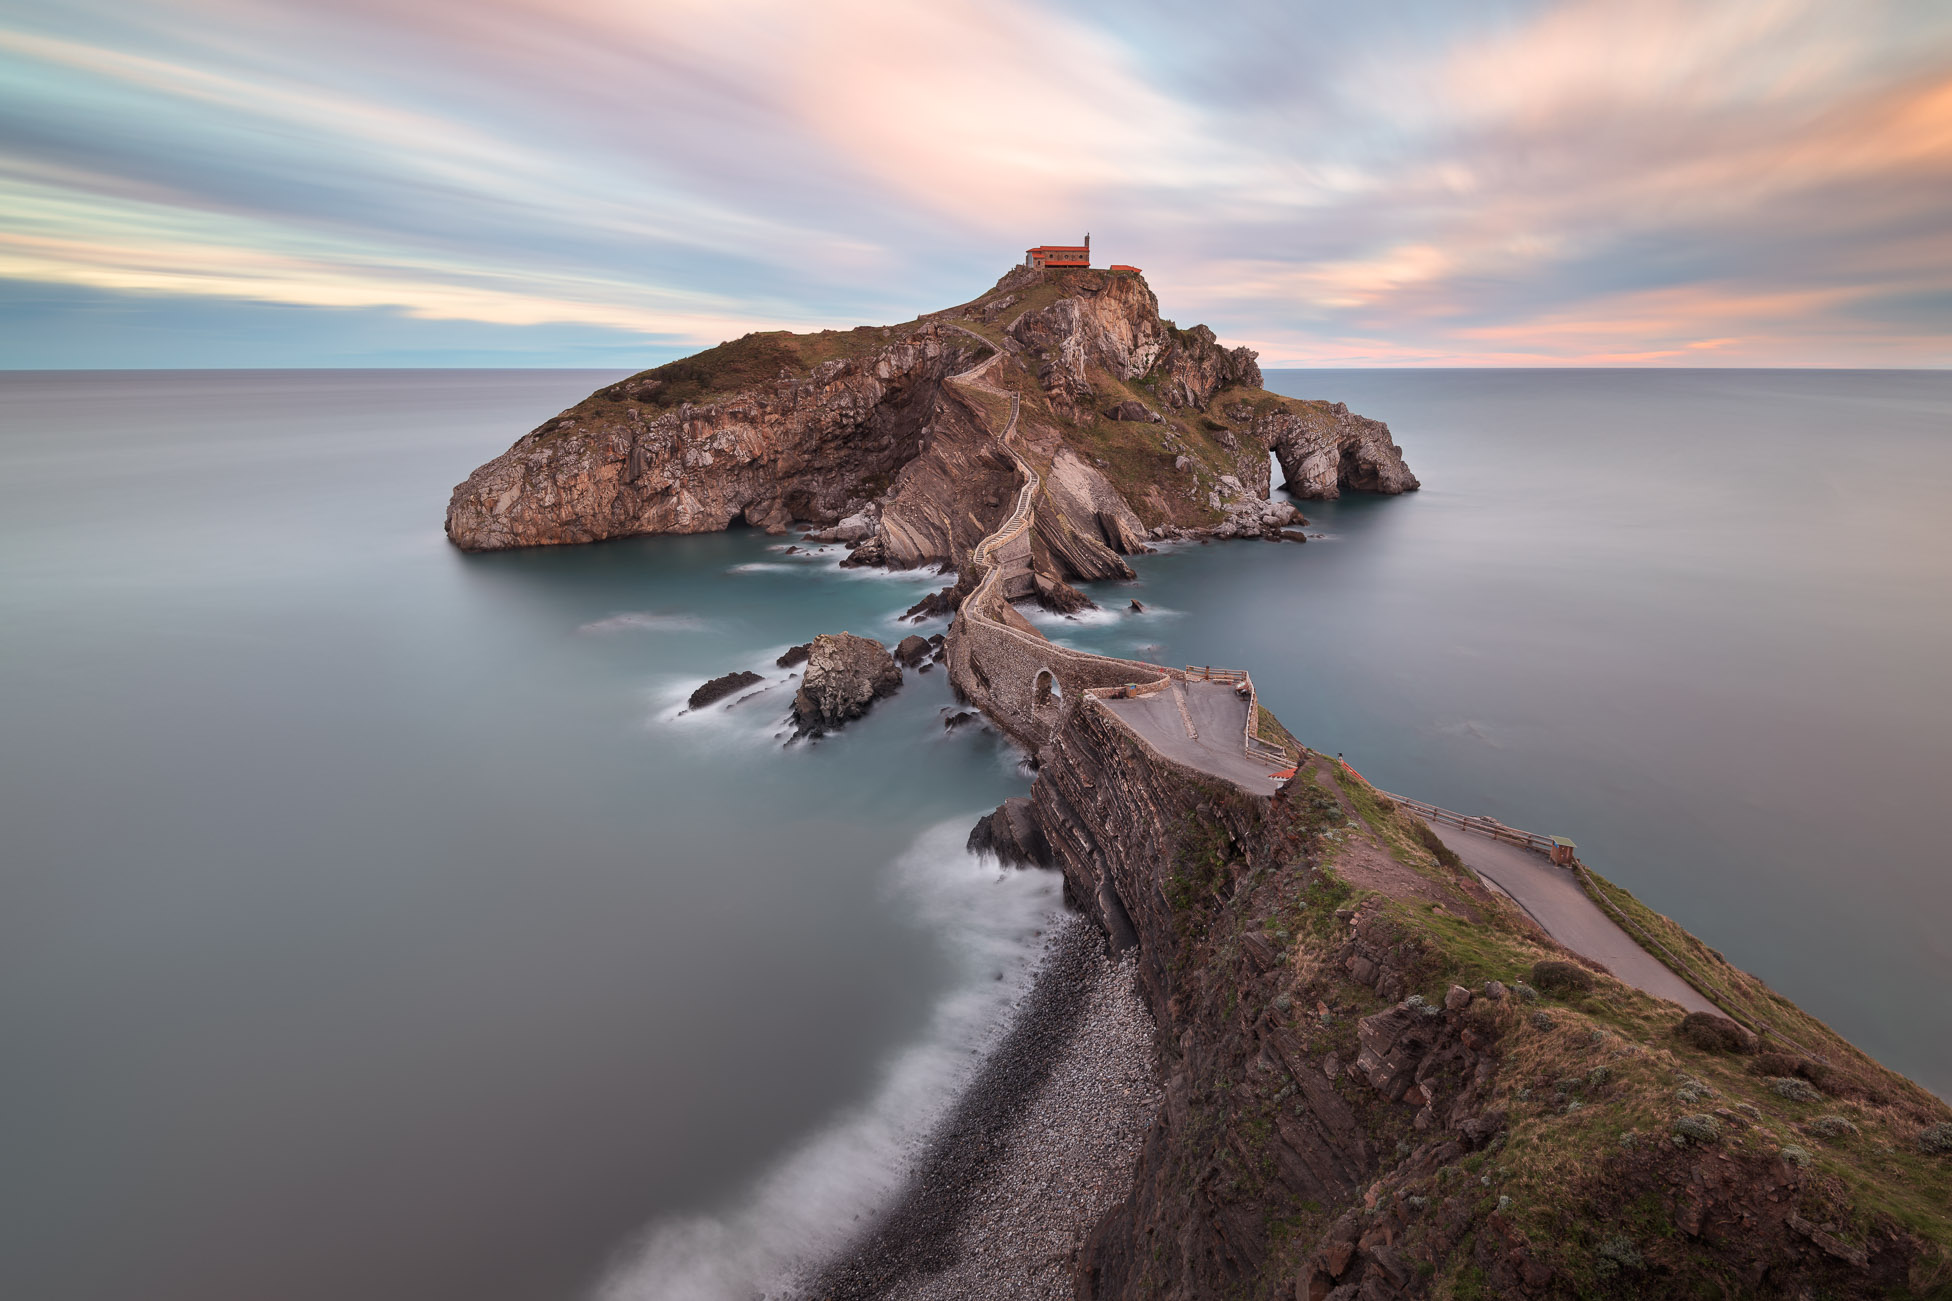 Dragonstone, Gaztelugatxe and San Juan Church in the Morning, Basque Country, Spain